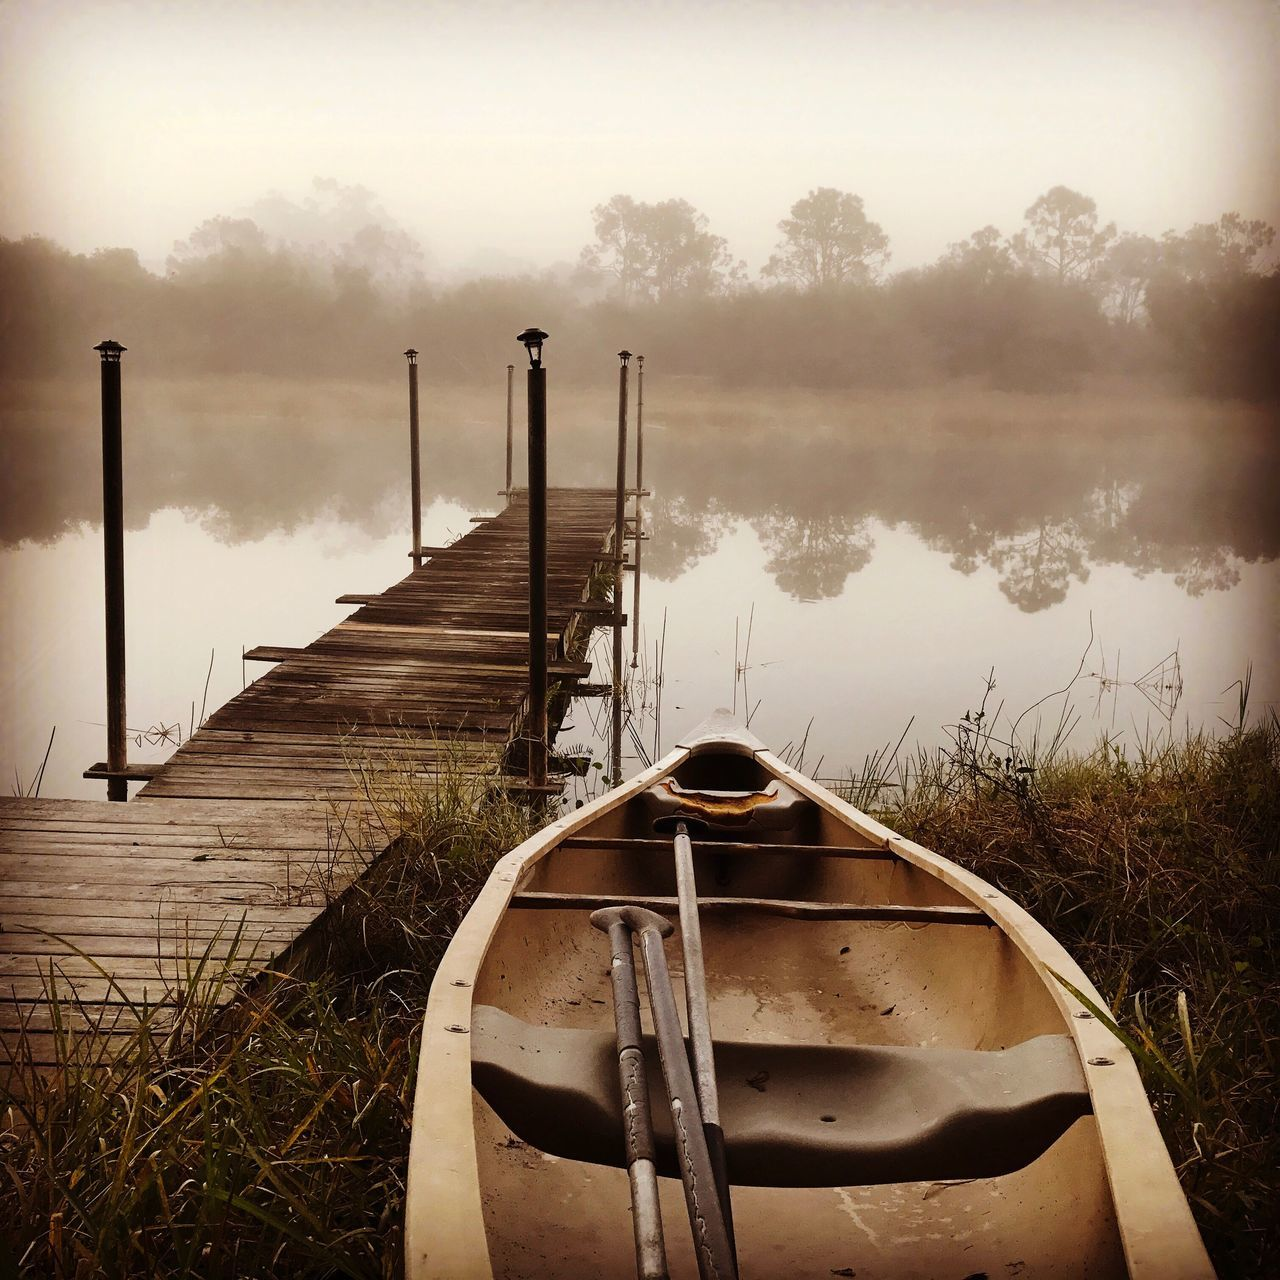 Morning fog Nature Water No People Outdoors Beauty In Nature Tranquility Fog Reflection Nature Photography Outdoors Beauty In Nature Beauty In Nature EyeEm Nature Lover Outdoor Photography Camping Out